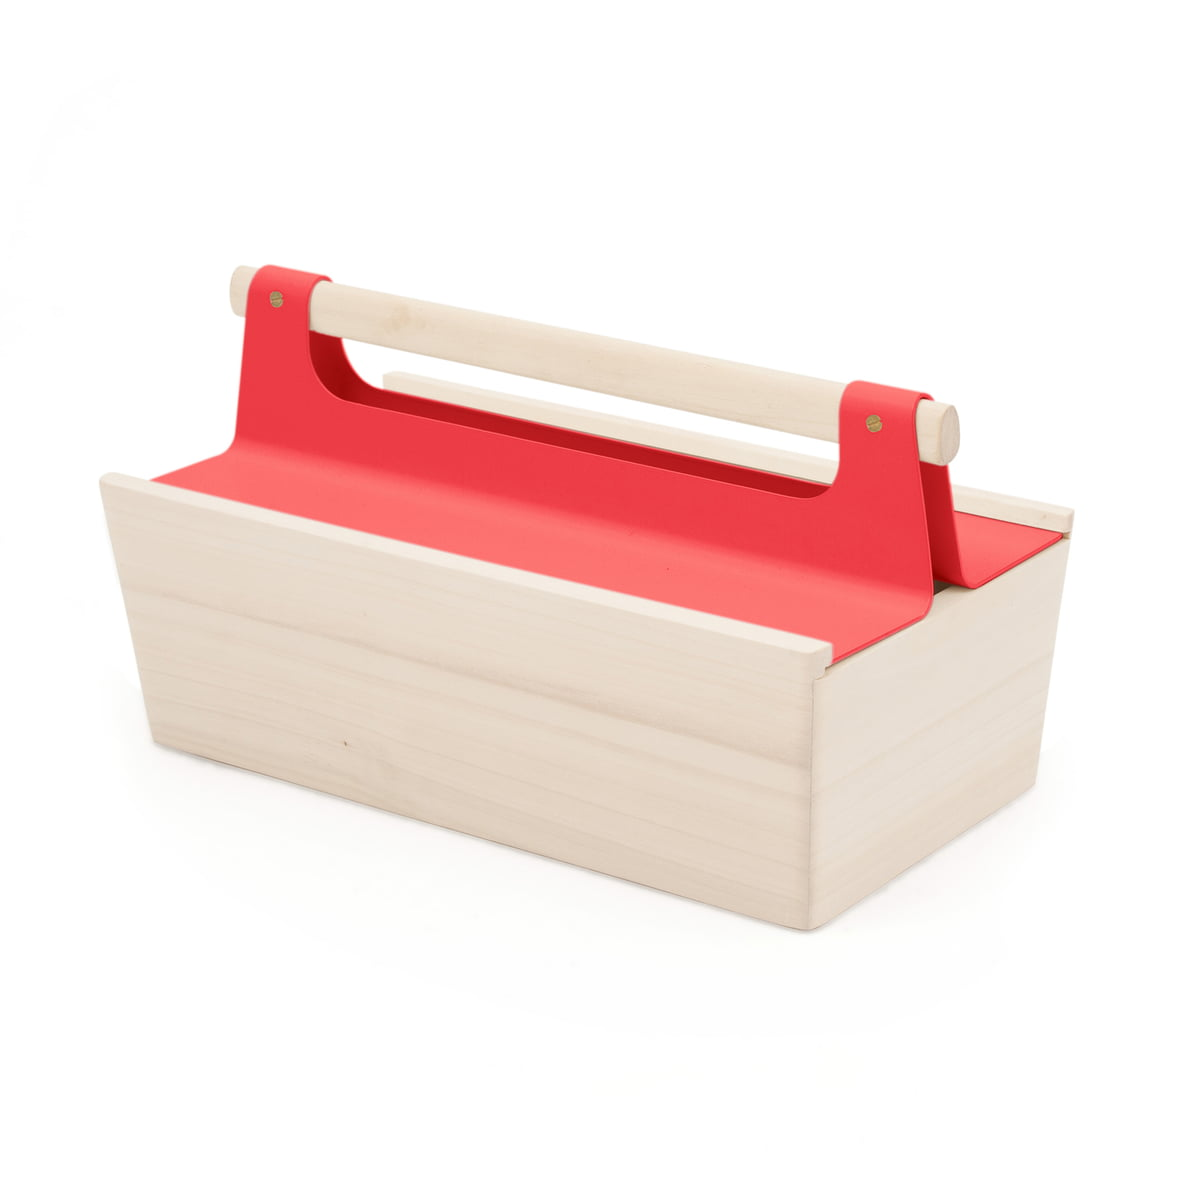 louisette toolbox by hartô in the shop